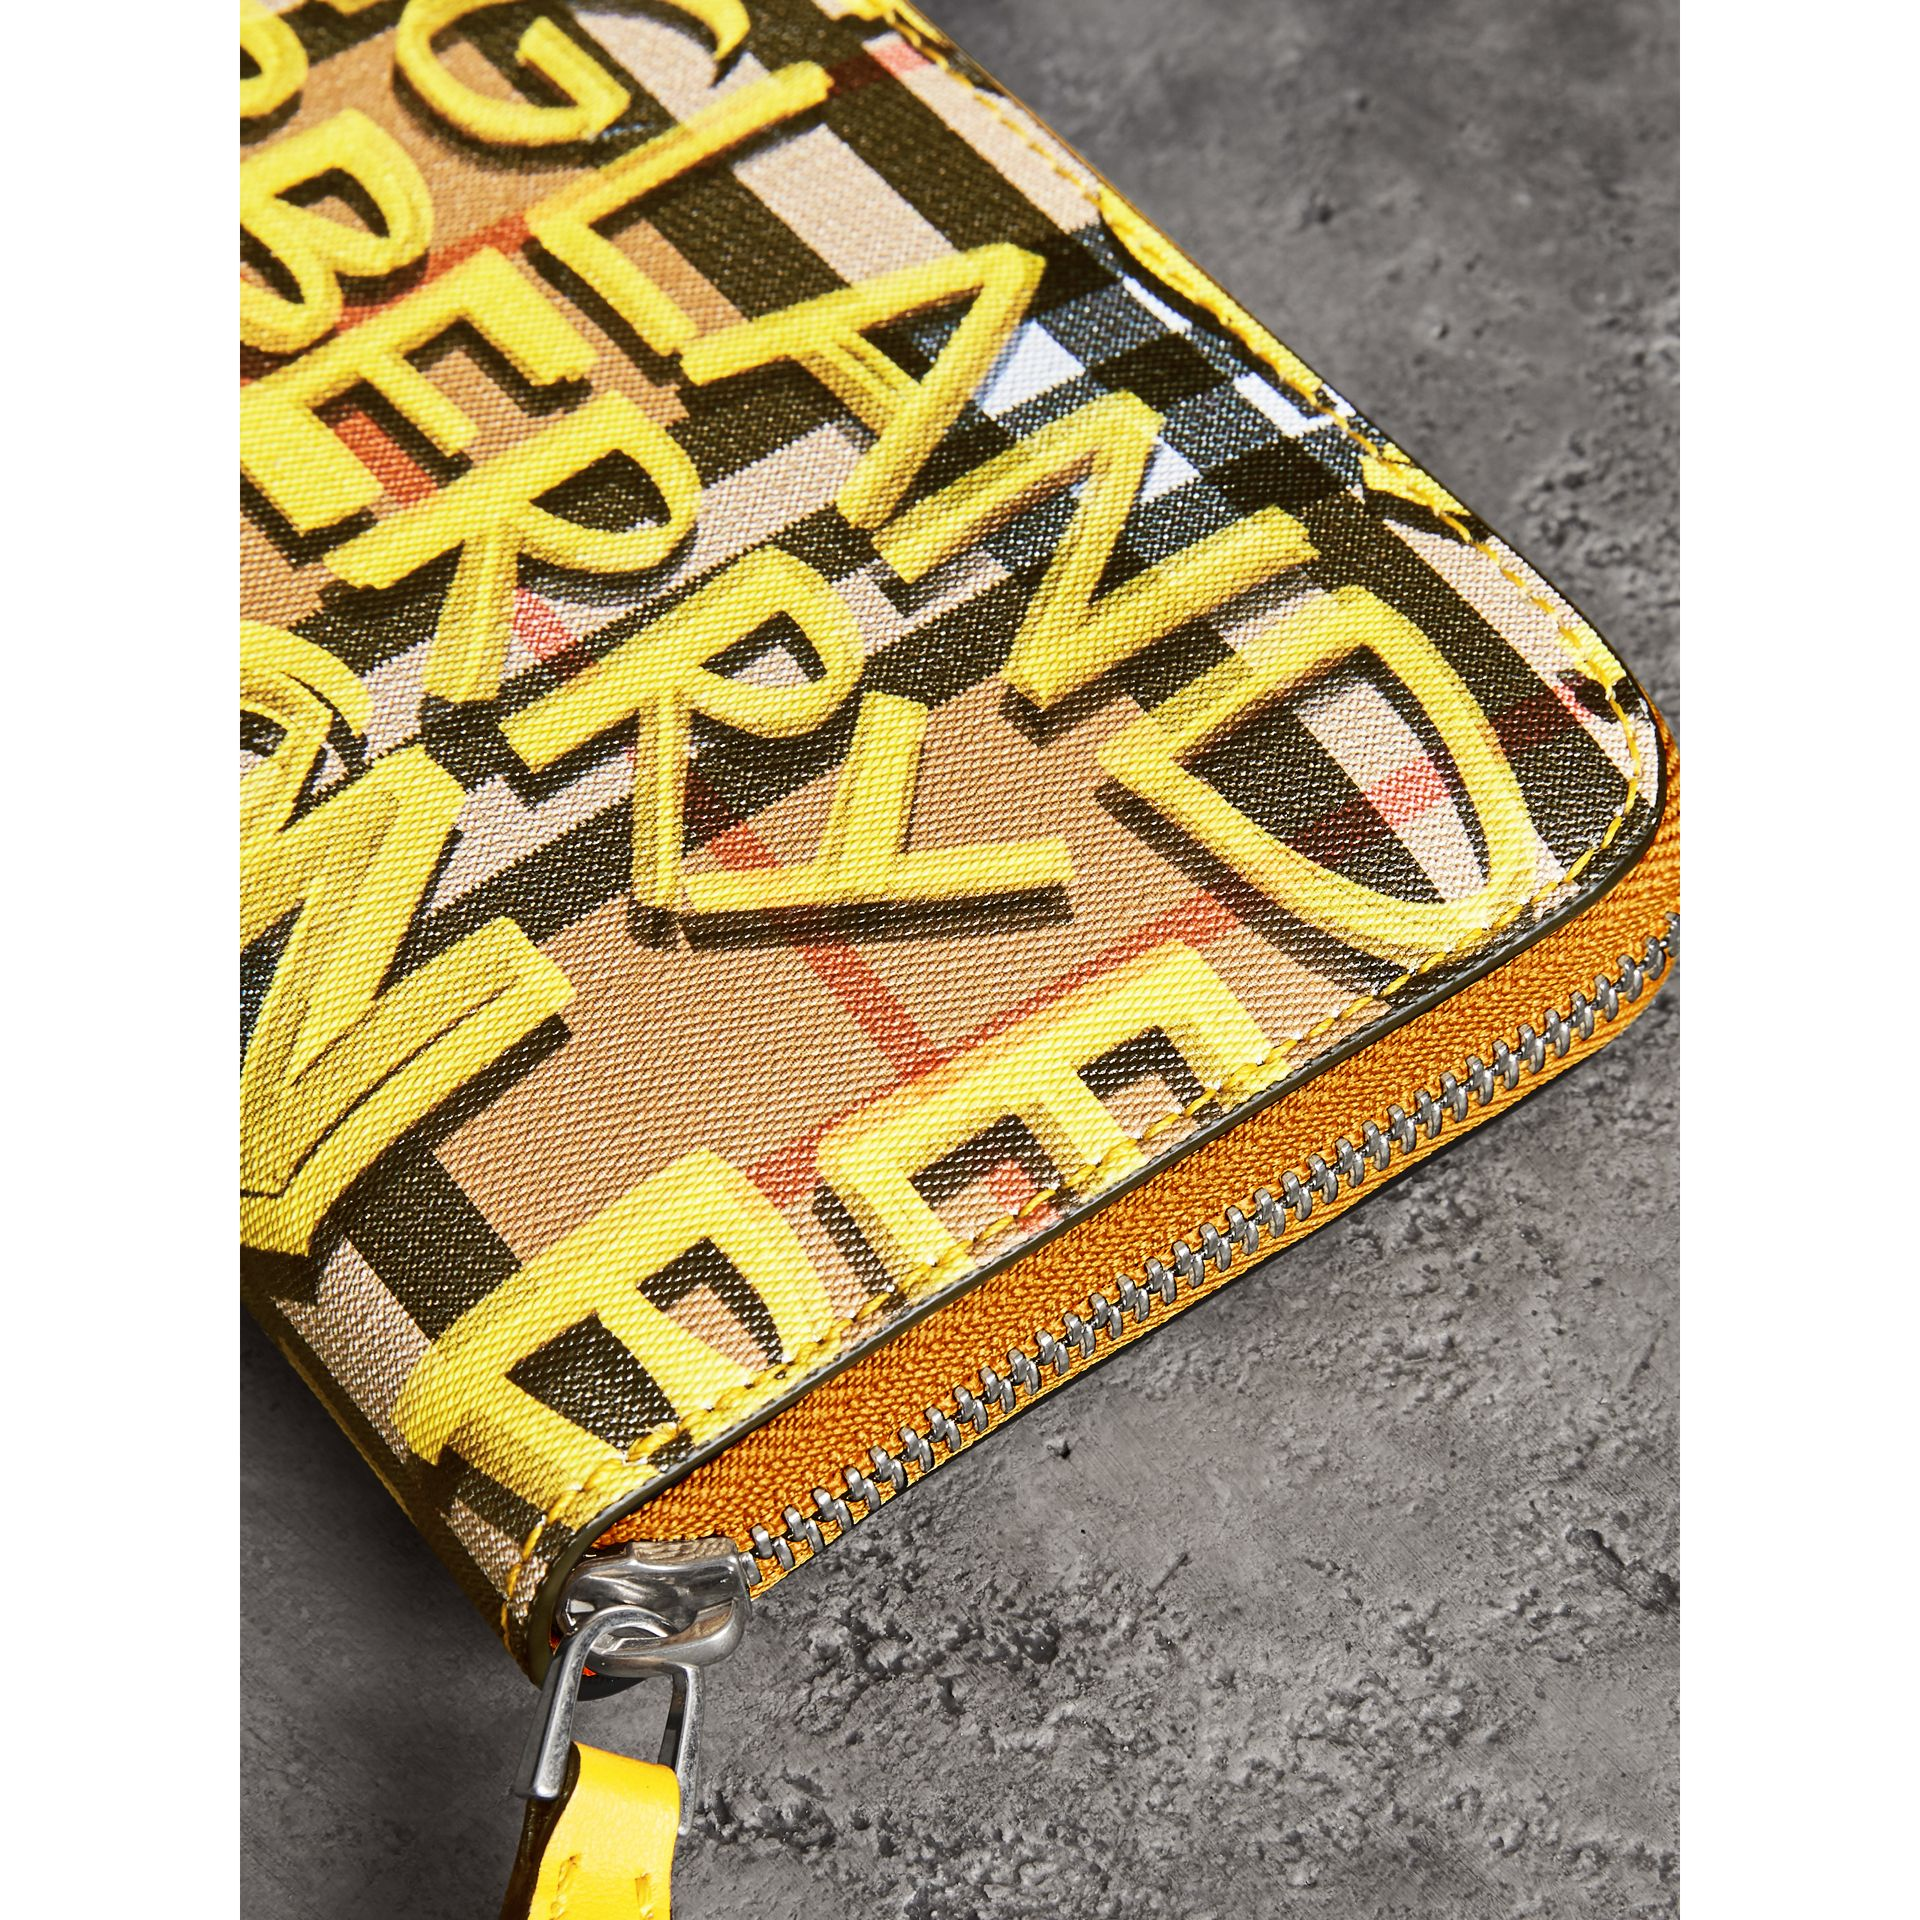 Graffiti Print Vintage Check Leather Ziparound Wallet in Yellow - Women | Burberry Canada - gallery image 1